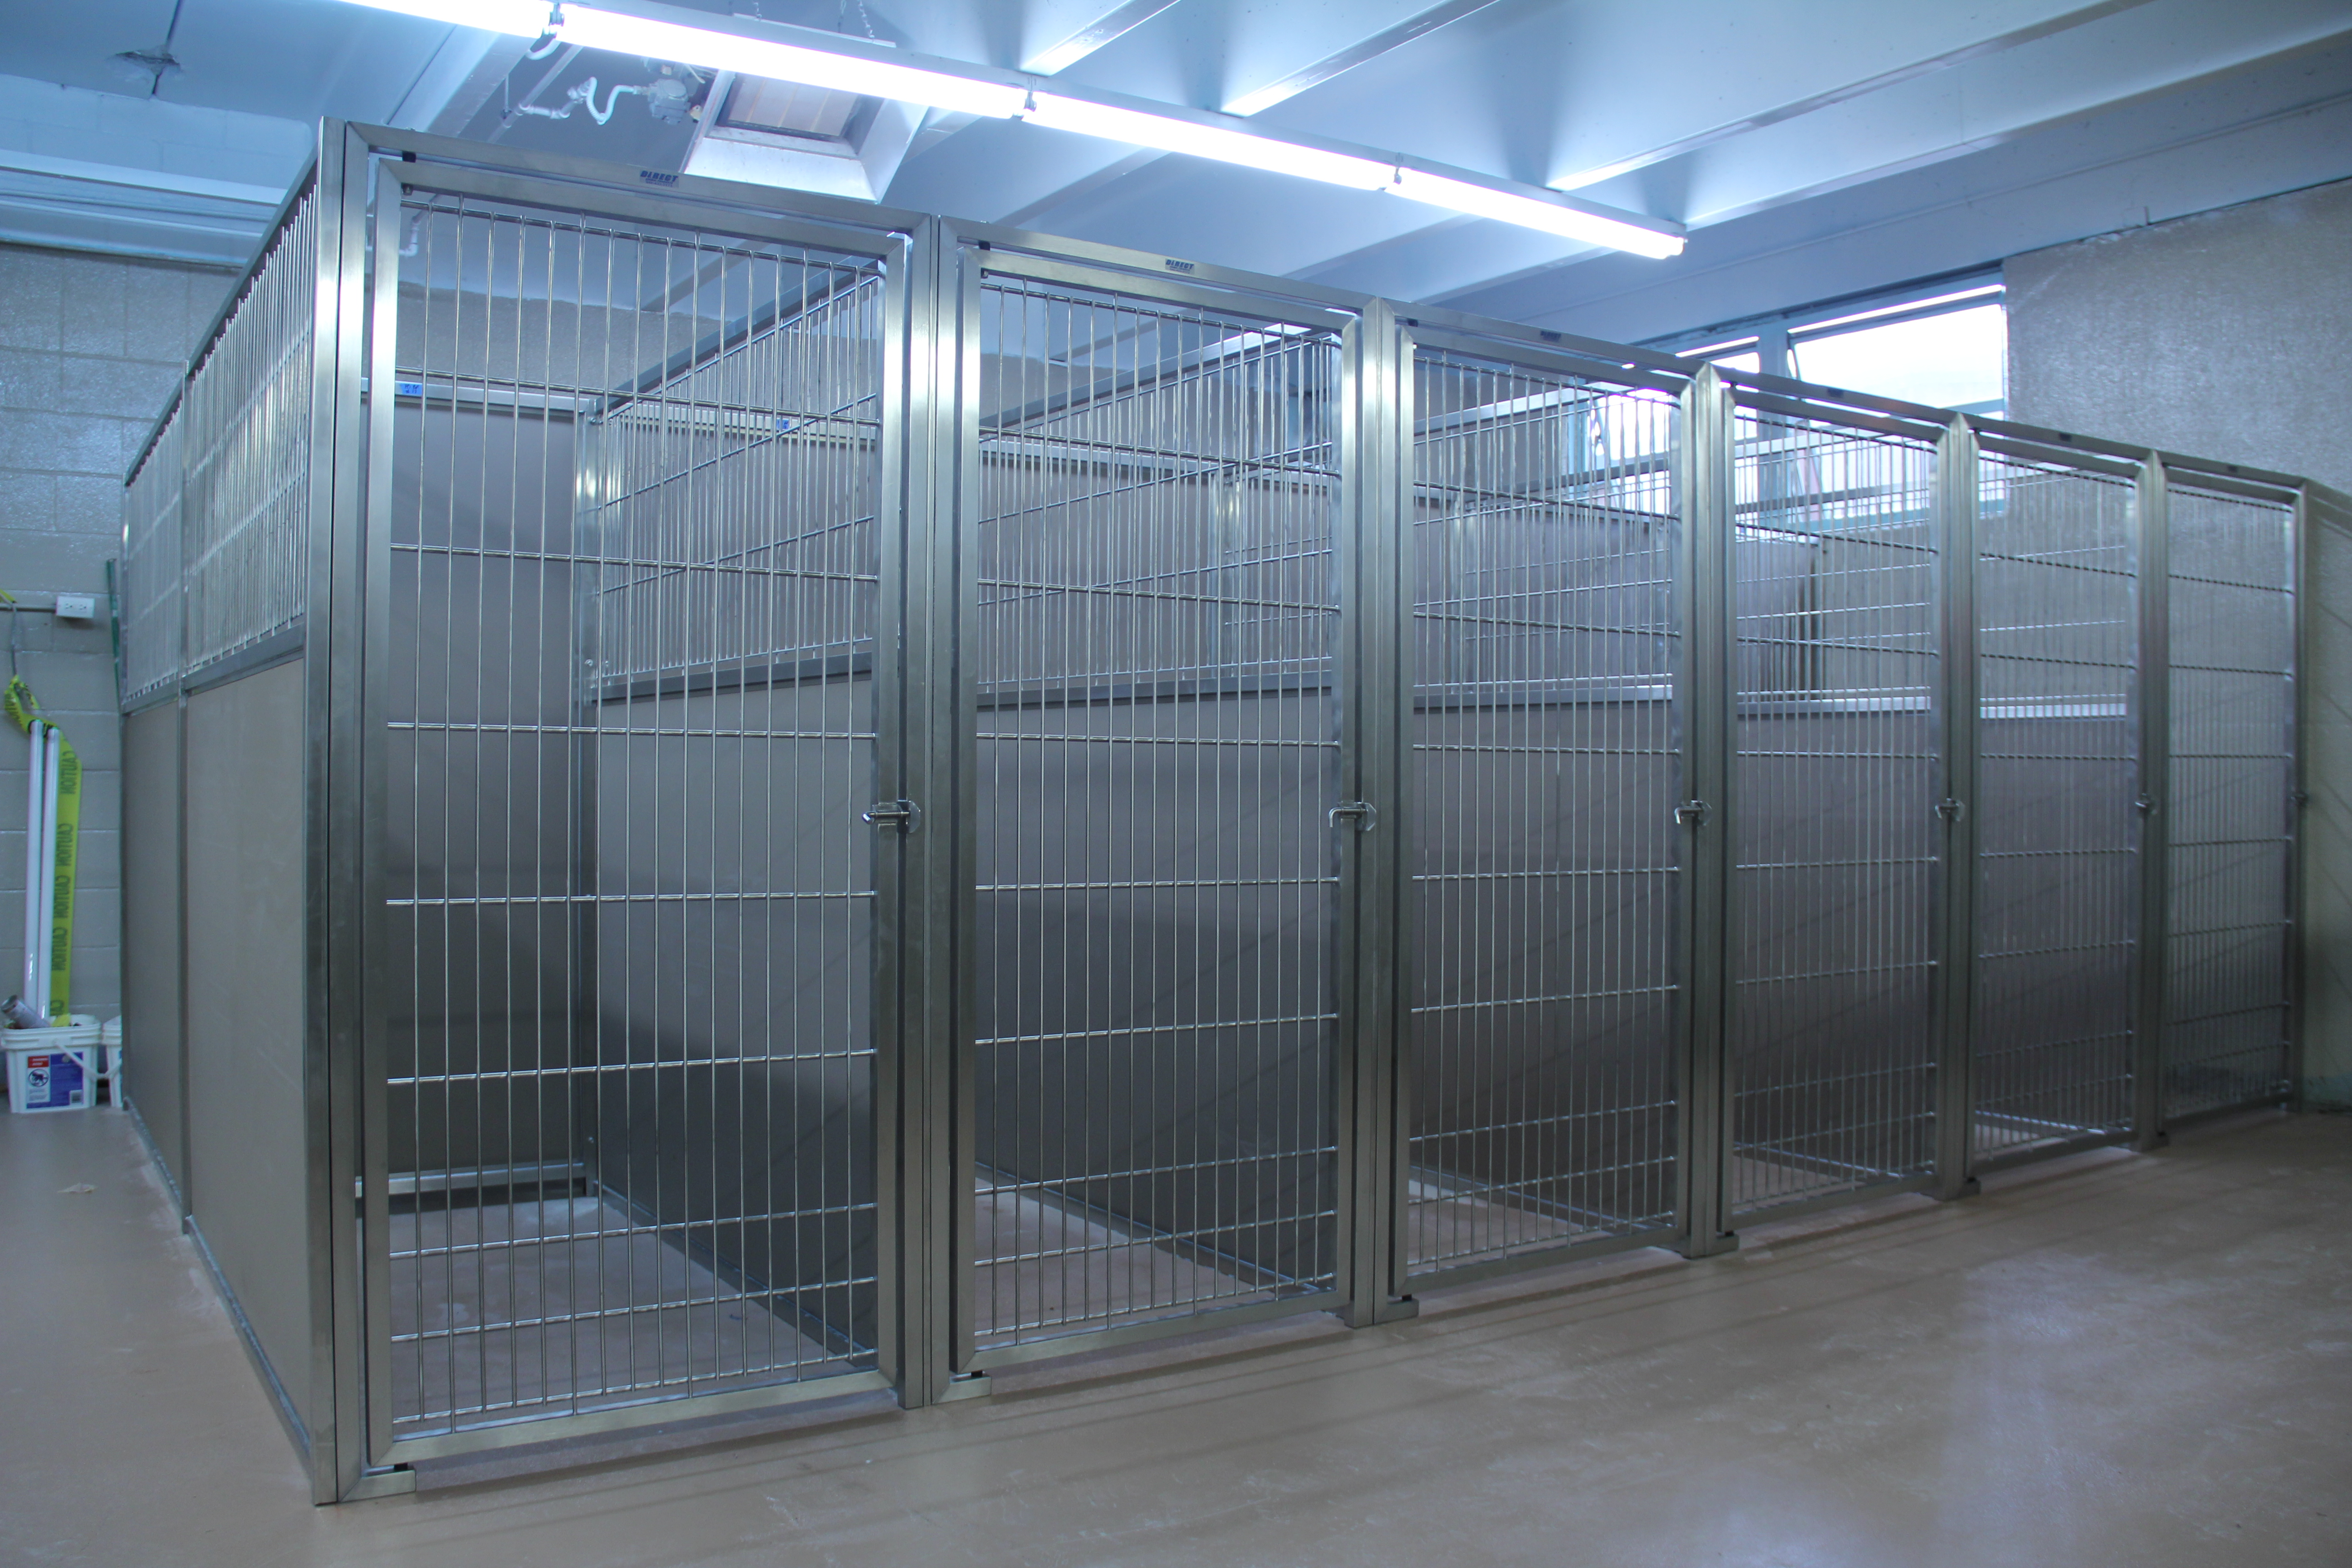 & The Best Dog Kennel Panels Start with Durable Stainless Steel Doors